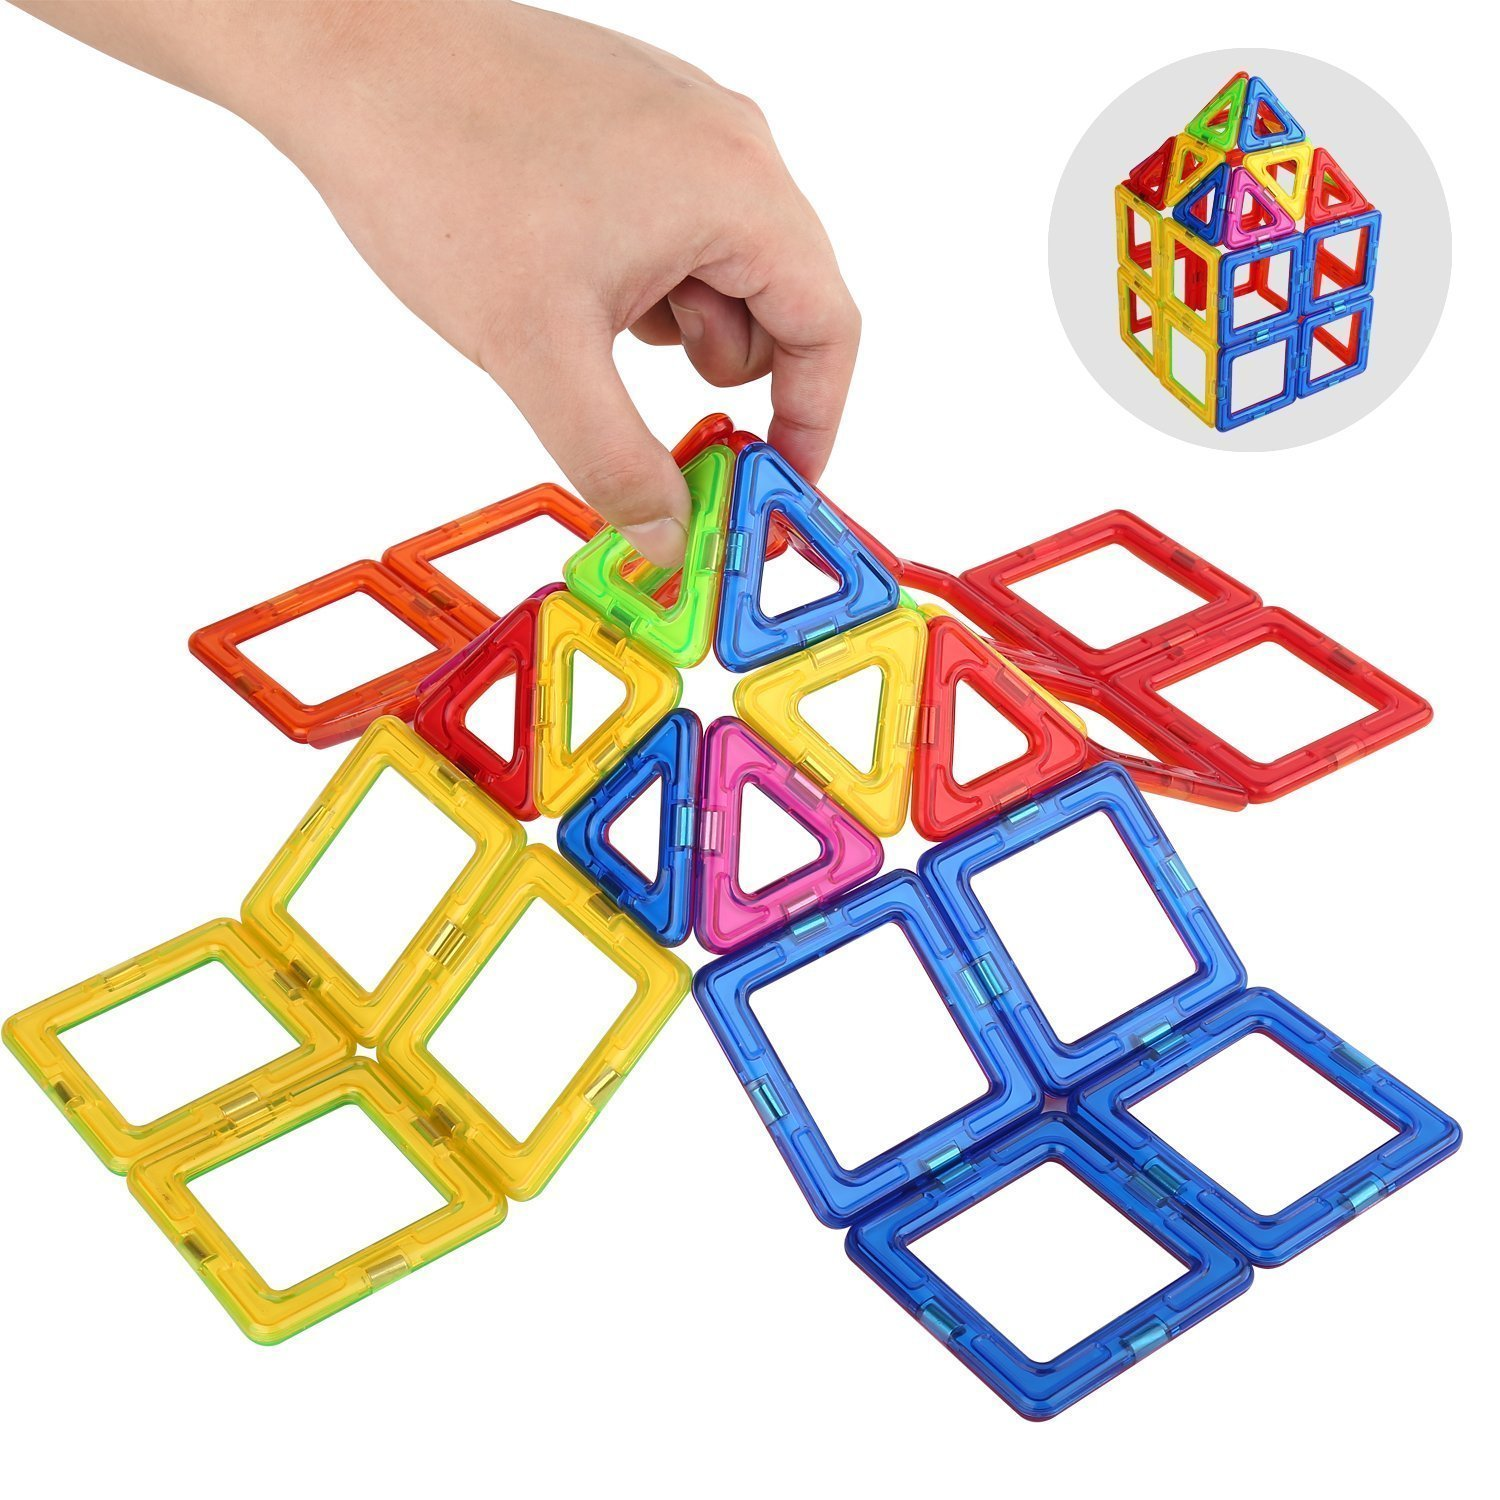 3D Magnetic Toys Tiles Set Preschool Educational Construction Learning 106 pcs